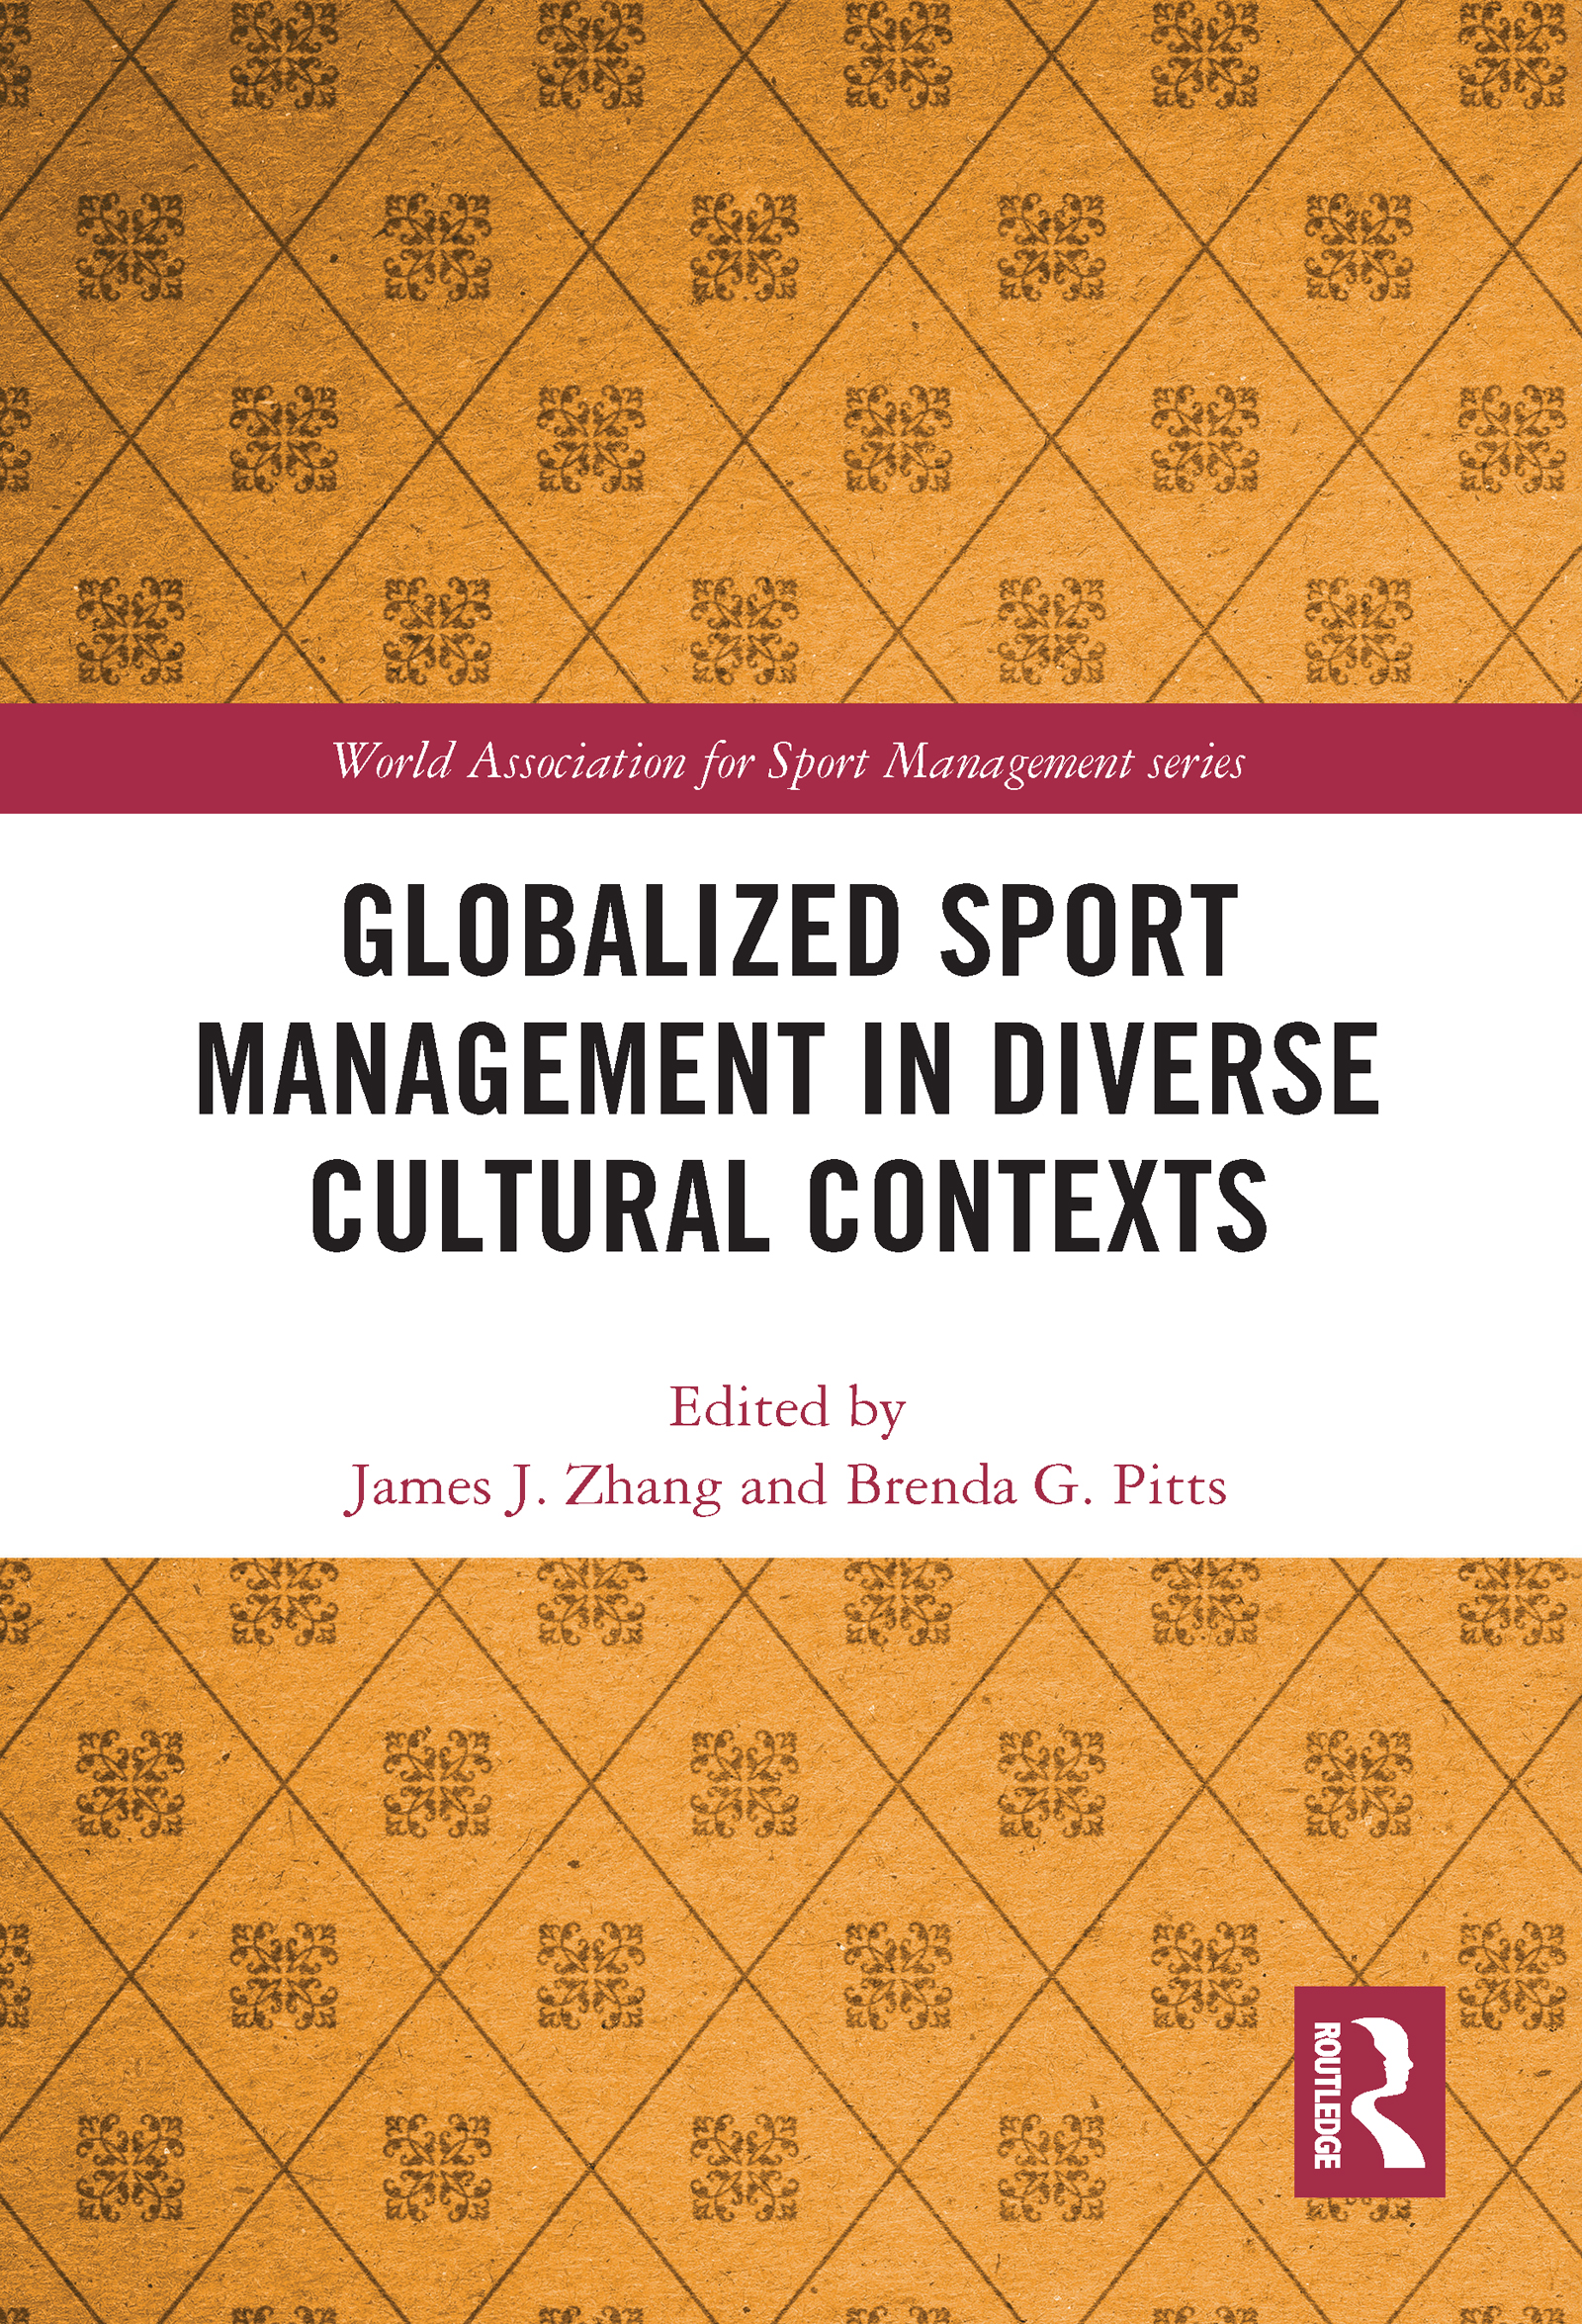 Globalized Sport Management in Diverse Cultural Contexts